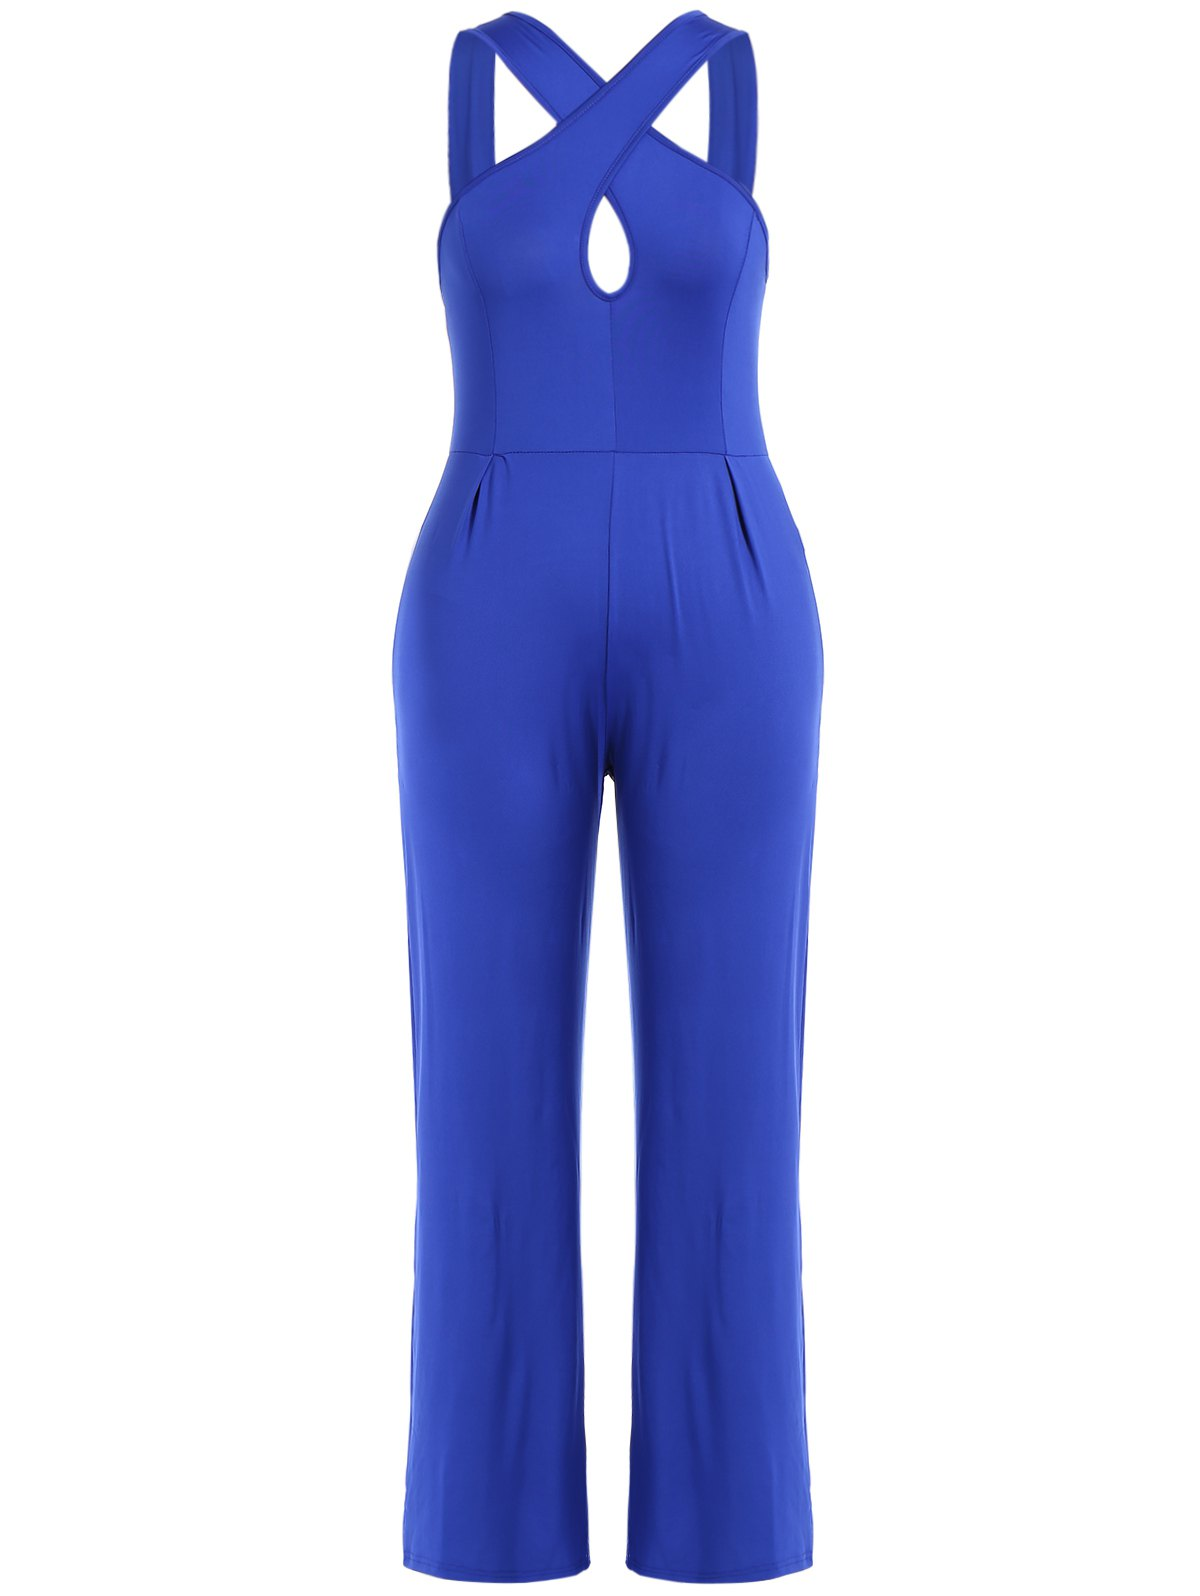 New Criss Cross Hollow Out Wide Leg Jumpsuit